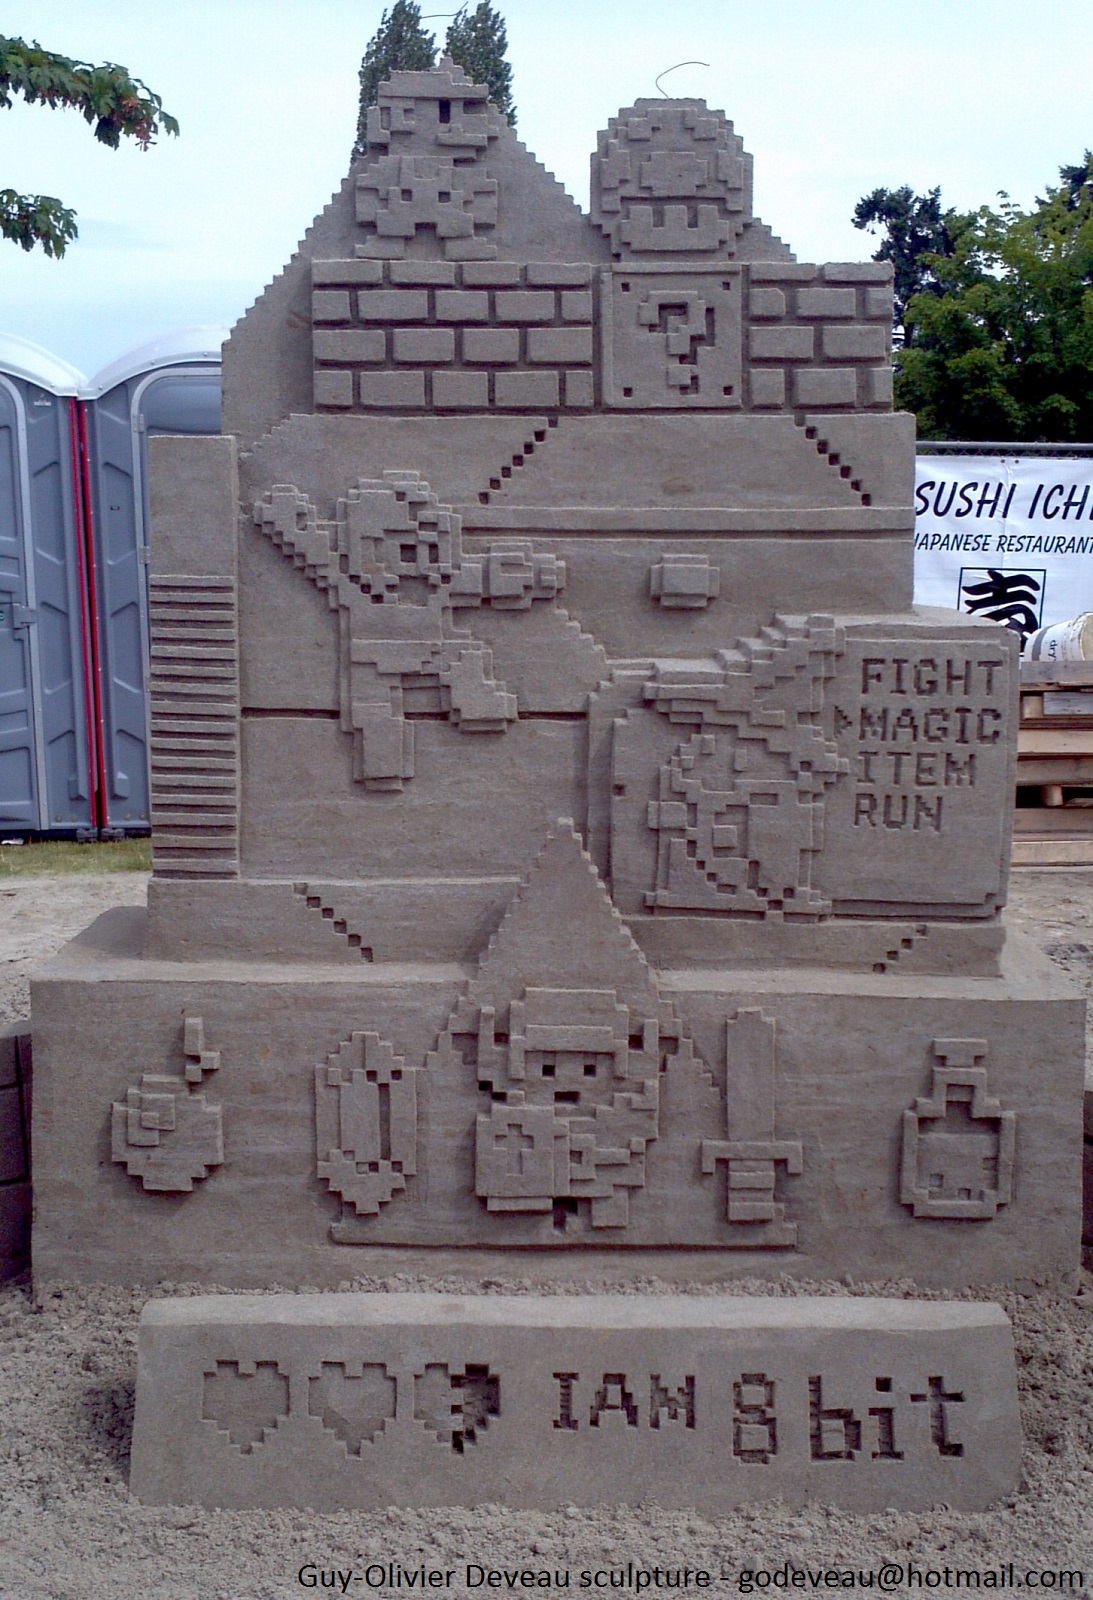 Sand Sculptures by Guy-Olivier Deveau: tumblr_mj8x3s2OuV1r0yza4o1_r2_1280.jpg